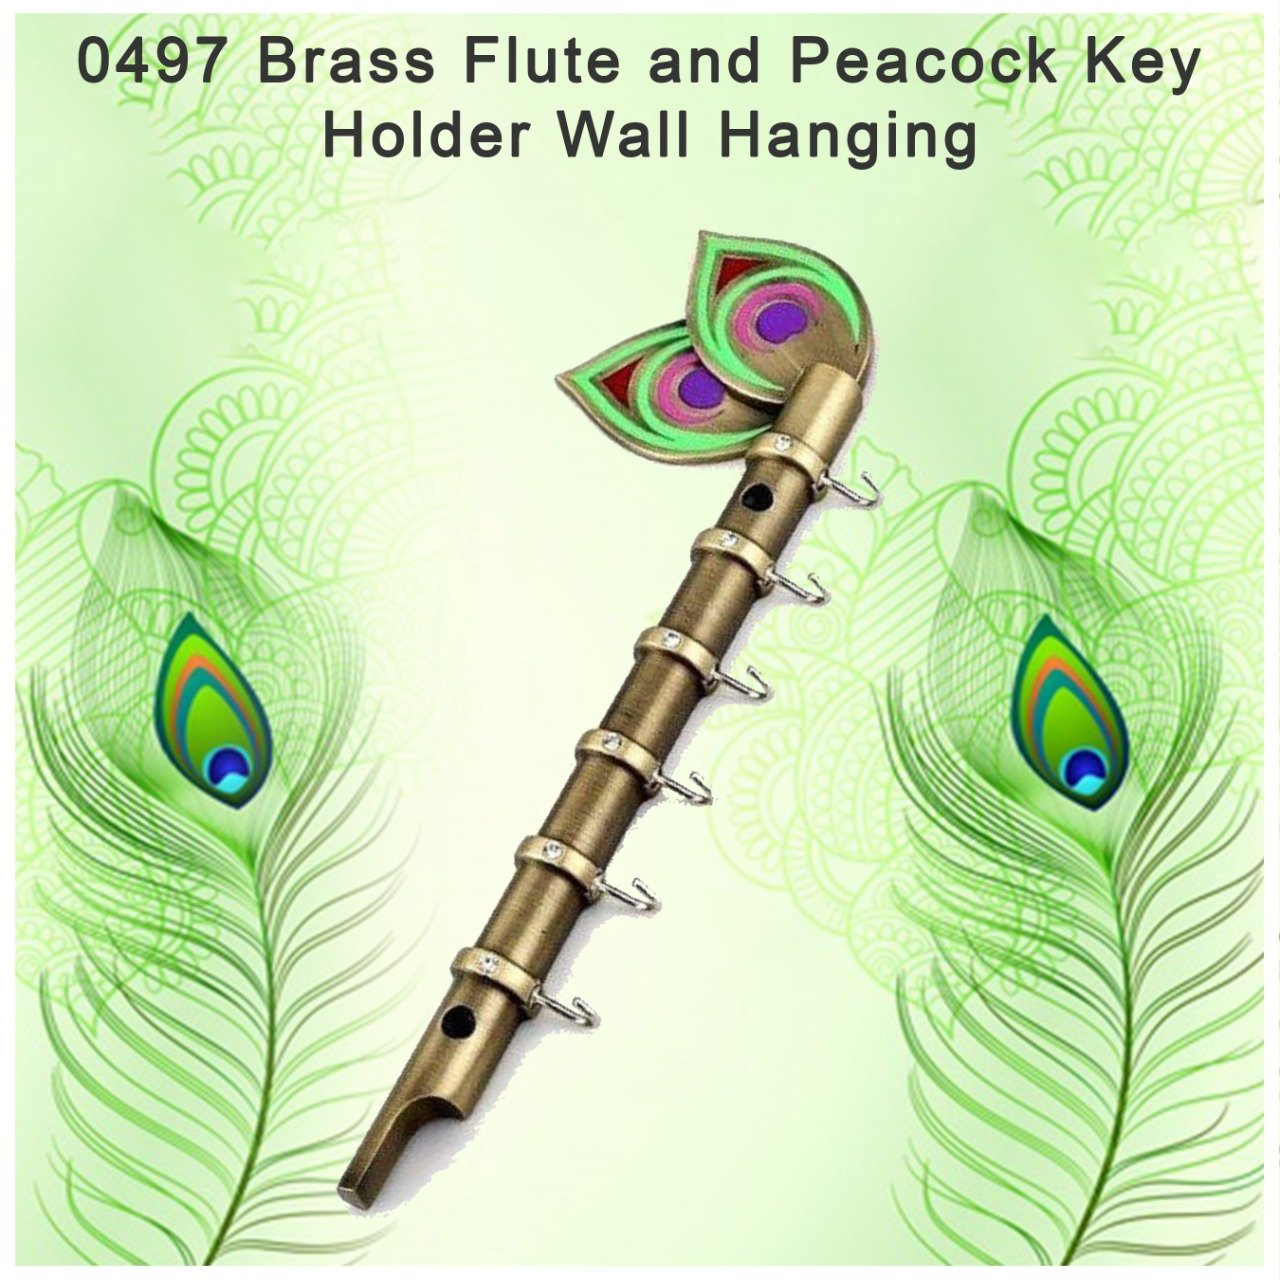 Brass Flute and Peacock Key Holder Wall Hanging